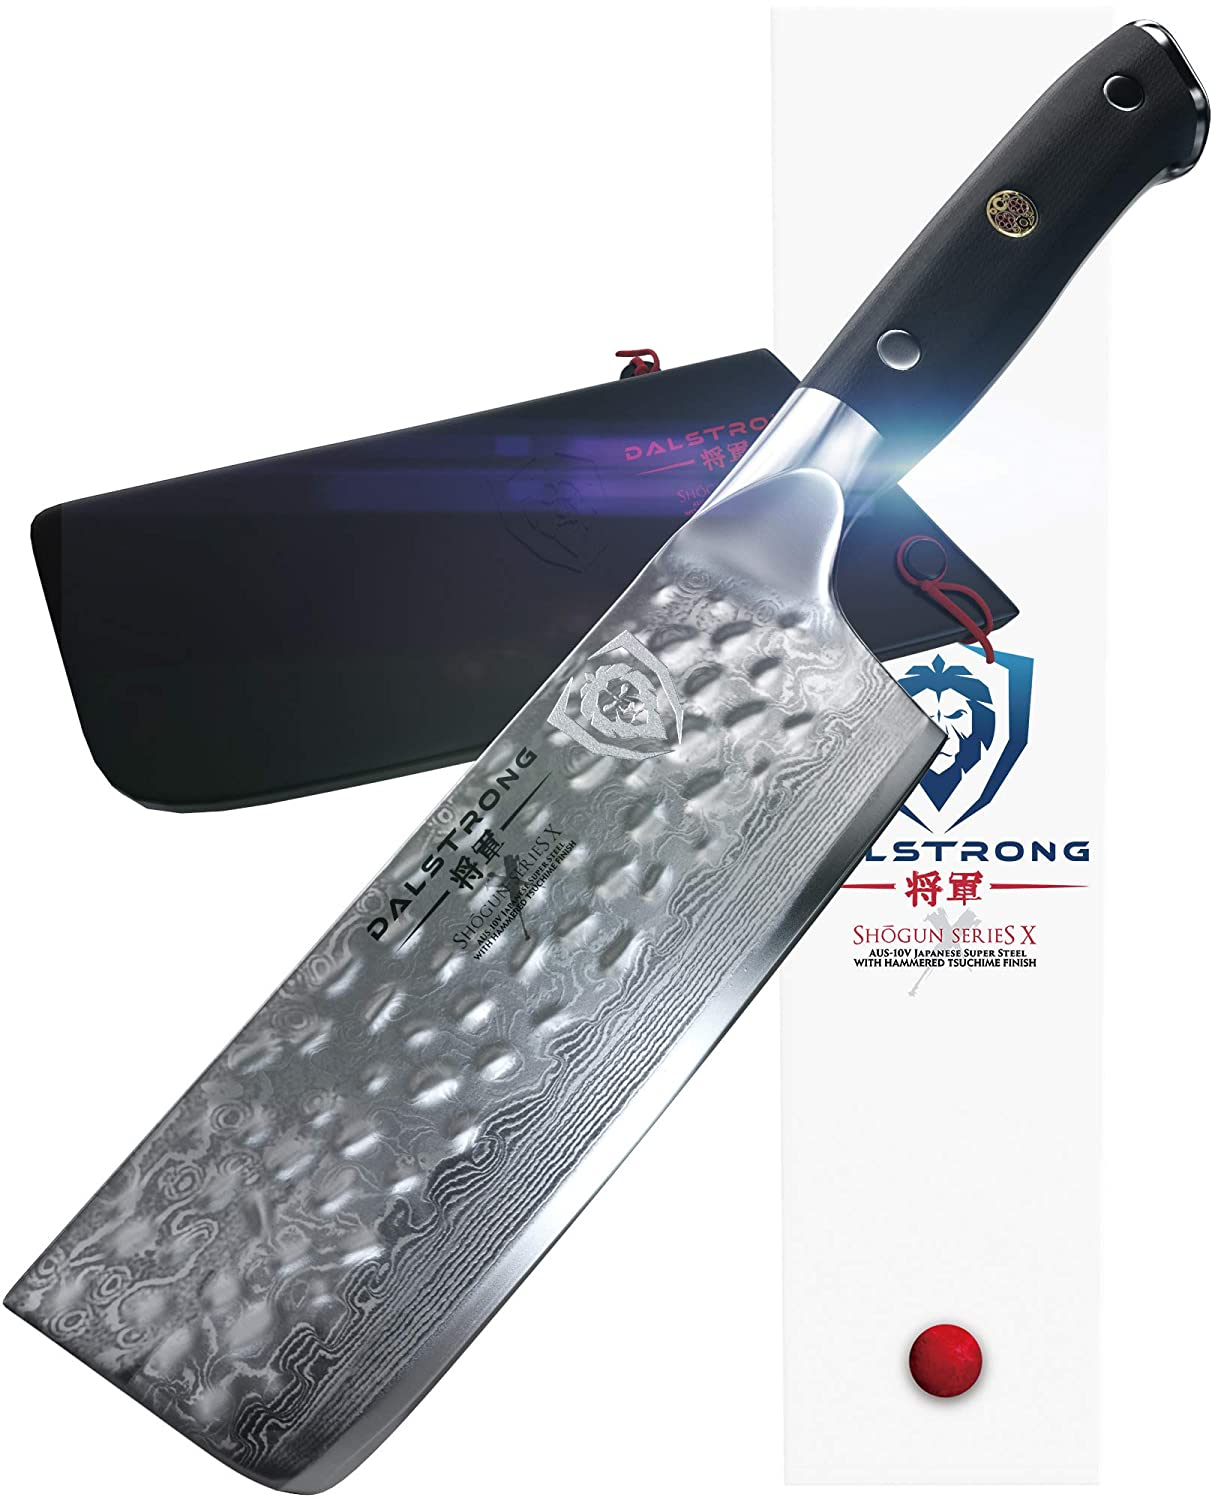 DALSTRONG Nakiri Vegetable Knife - Shogun Series X - Japanese AUS-10V Super Steel - Damascus - Hammered Finish - 6